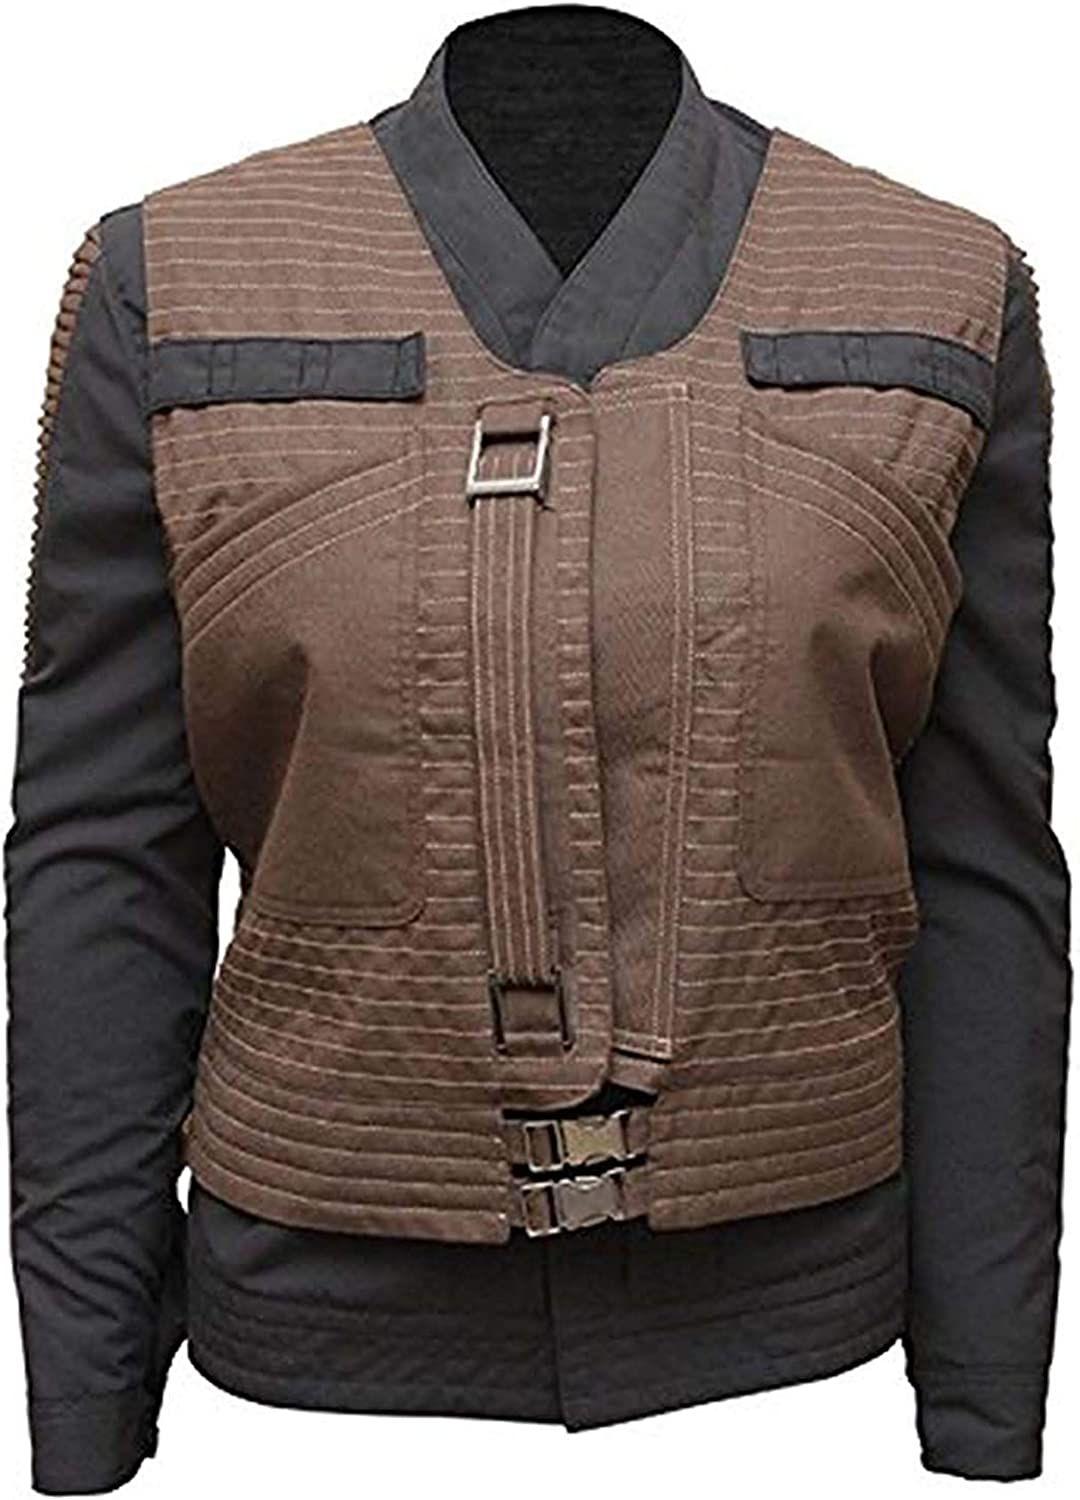 Zibco Fashion Rogue One Jyn Erso Star Wars Brown Cotton Women Biker Jacket with Vest